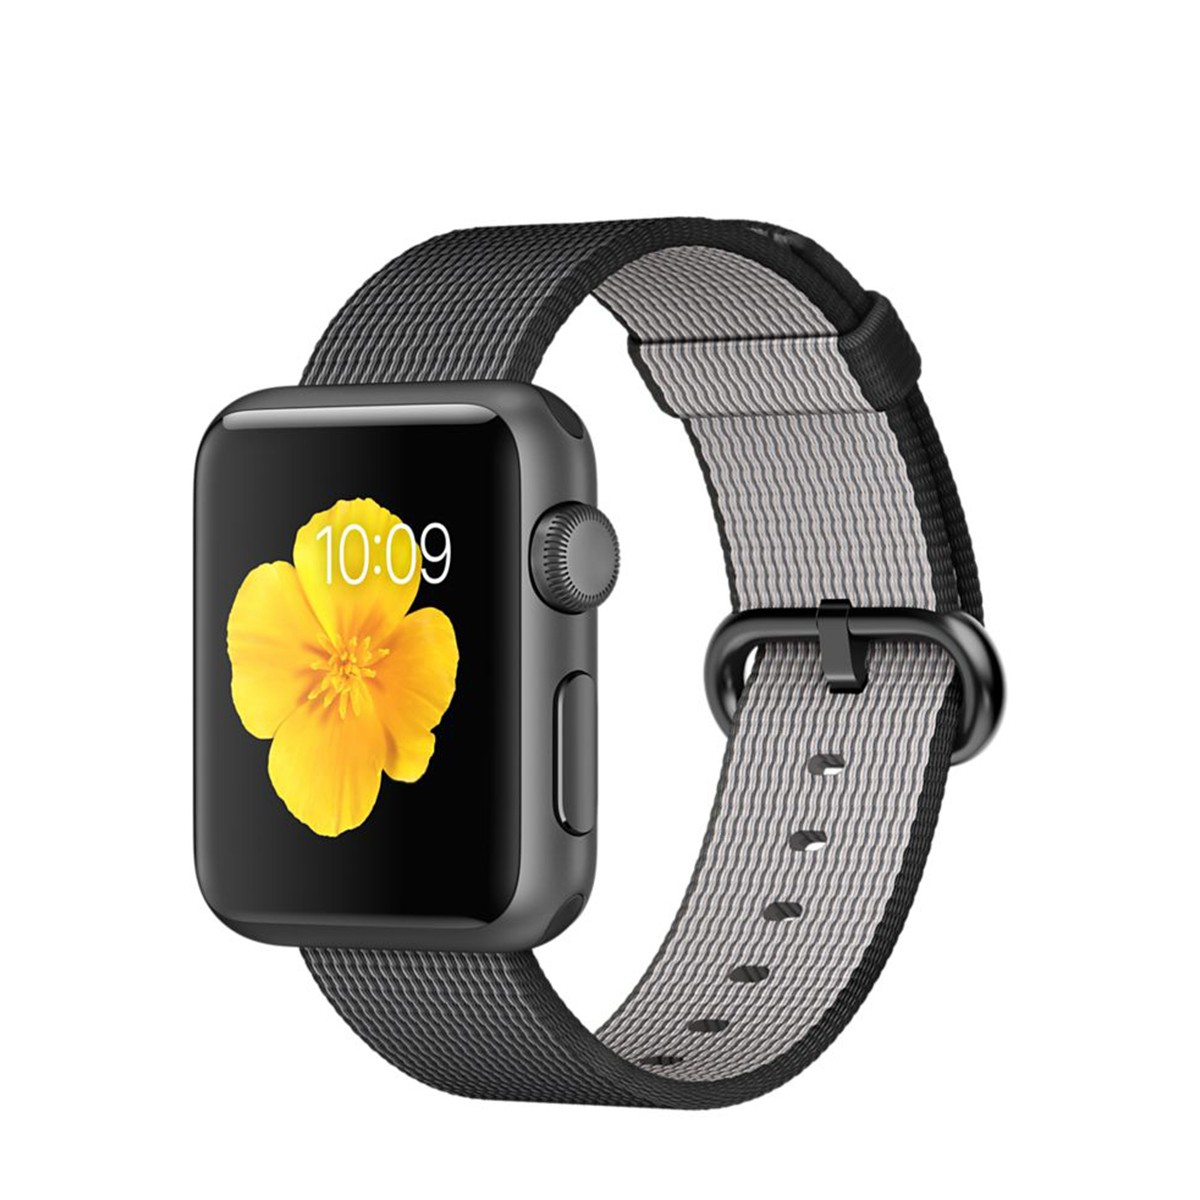 Apple Watch Sport 38 mm Space Gray Aluminum Case s Black Woven Nylon